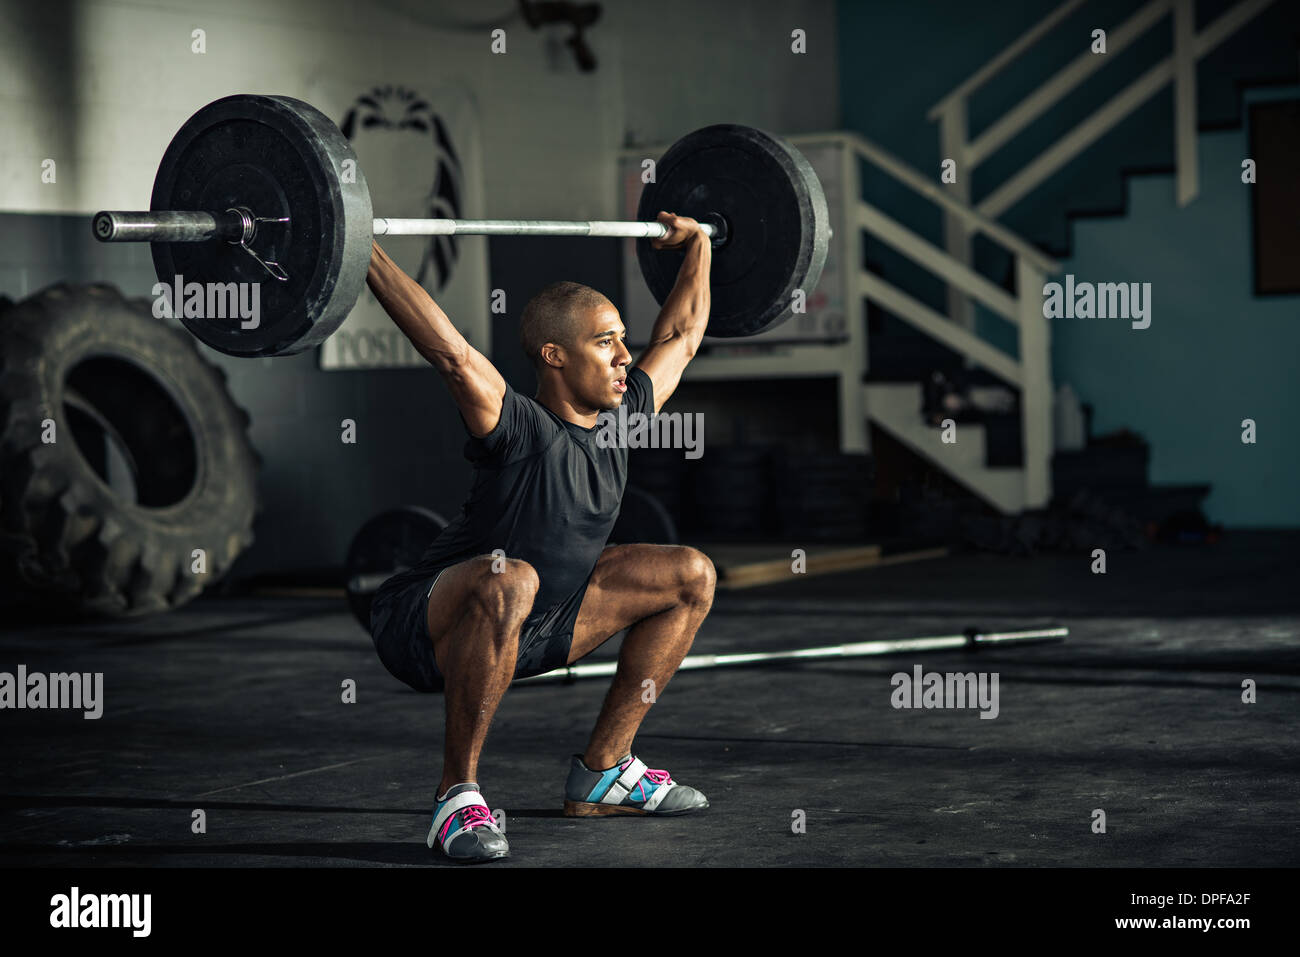 Young man weightlifting barbells in gymnasium - Stock Image